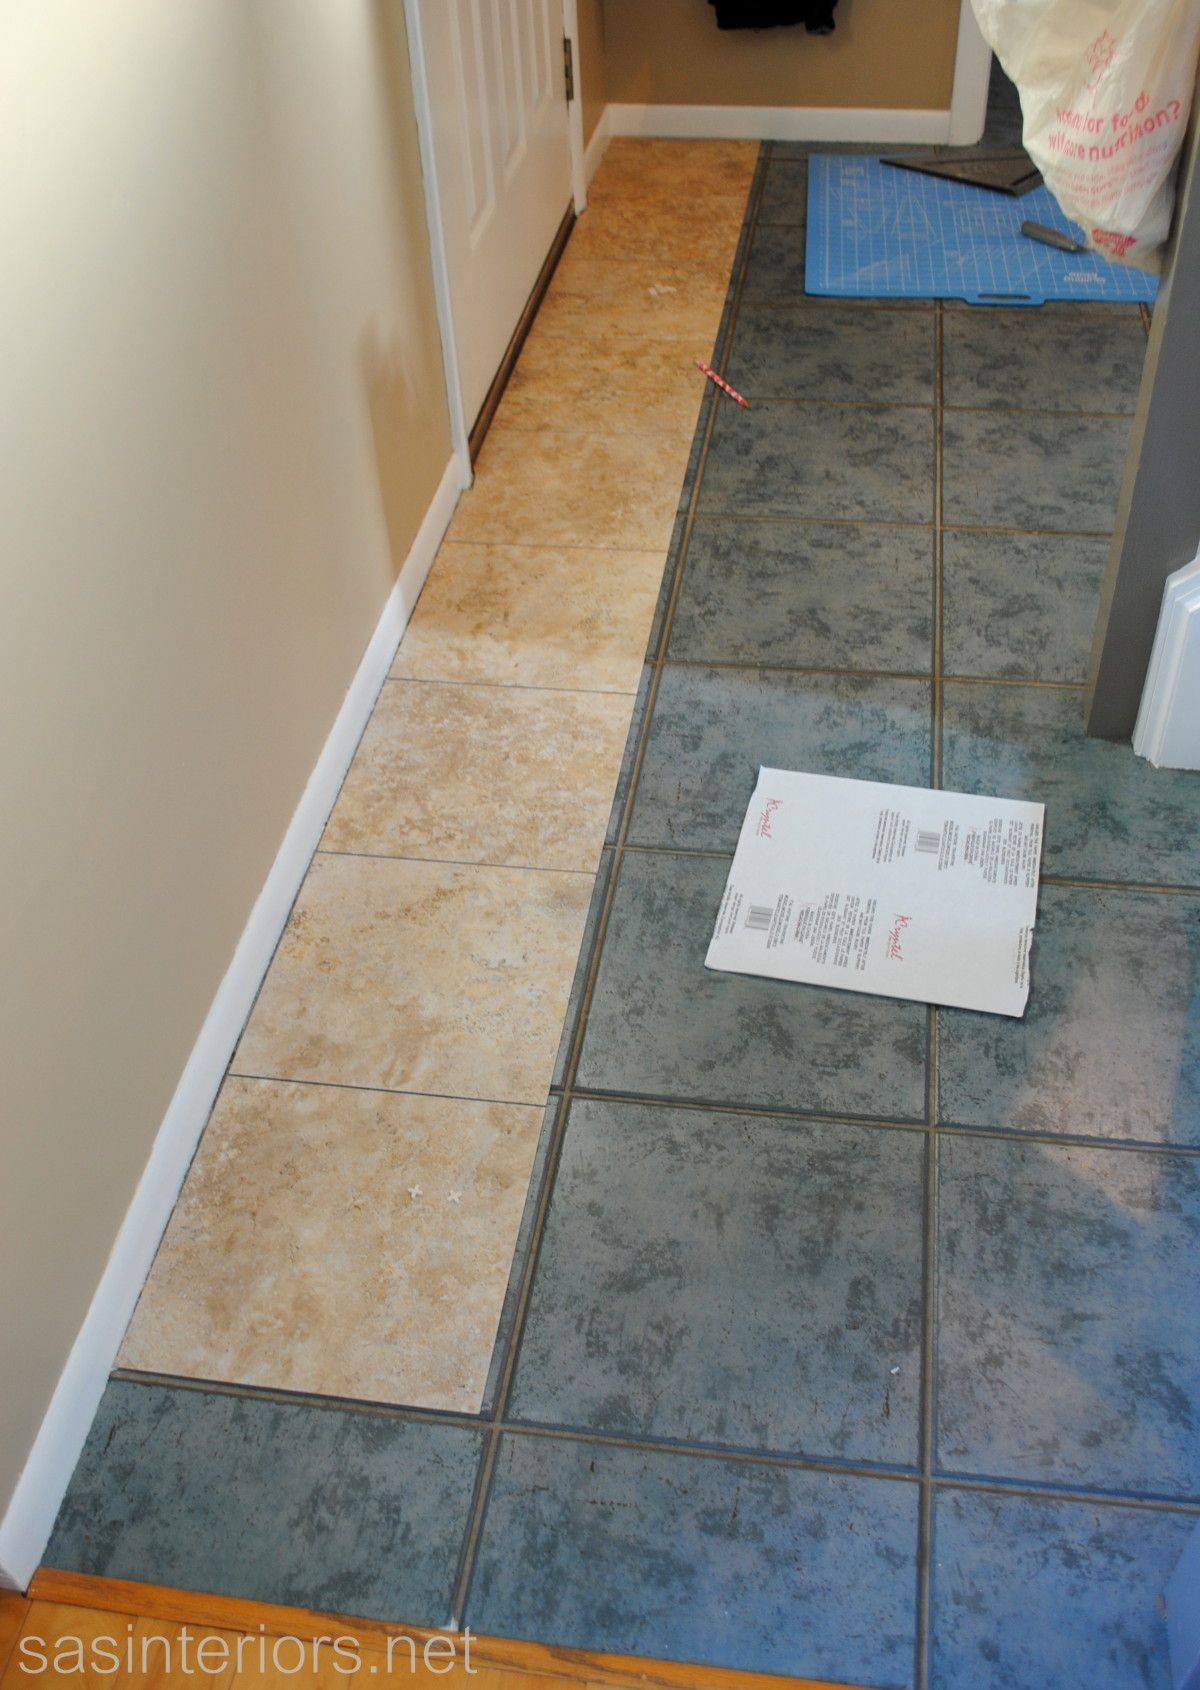 Can you lay tile over vinyl flooring image collections home how to install ceramic floor tile over linoleum gallery home installing tile over vinyl flooring choice dailygadgetfo Gallery